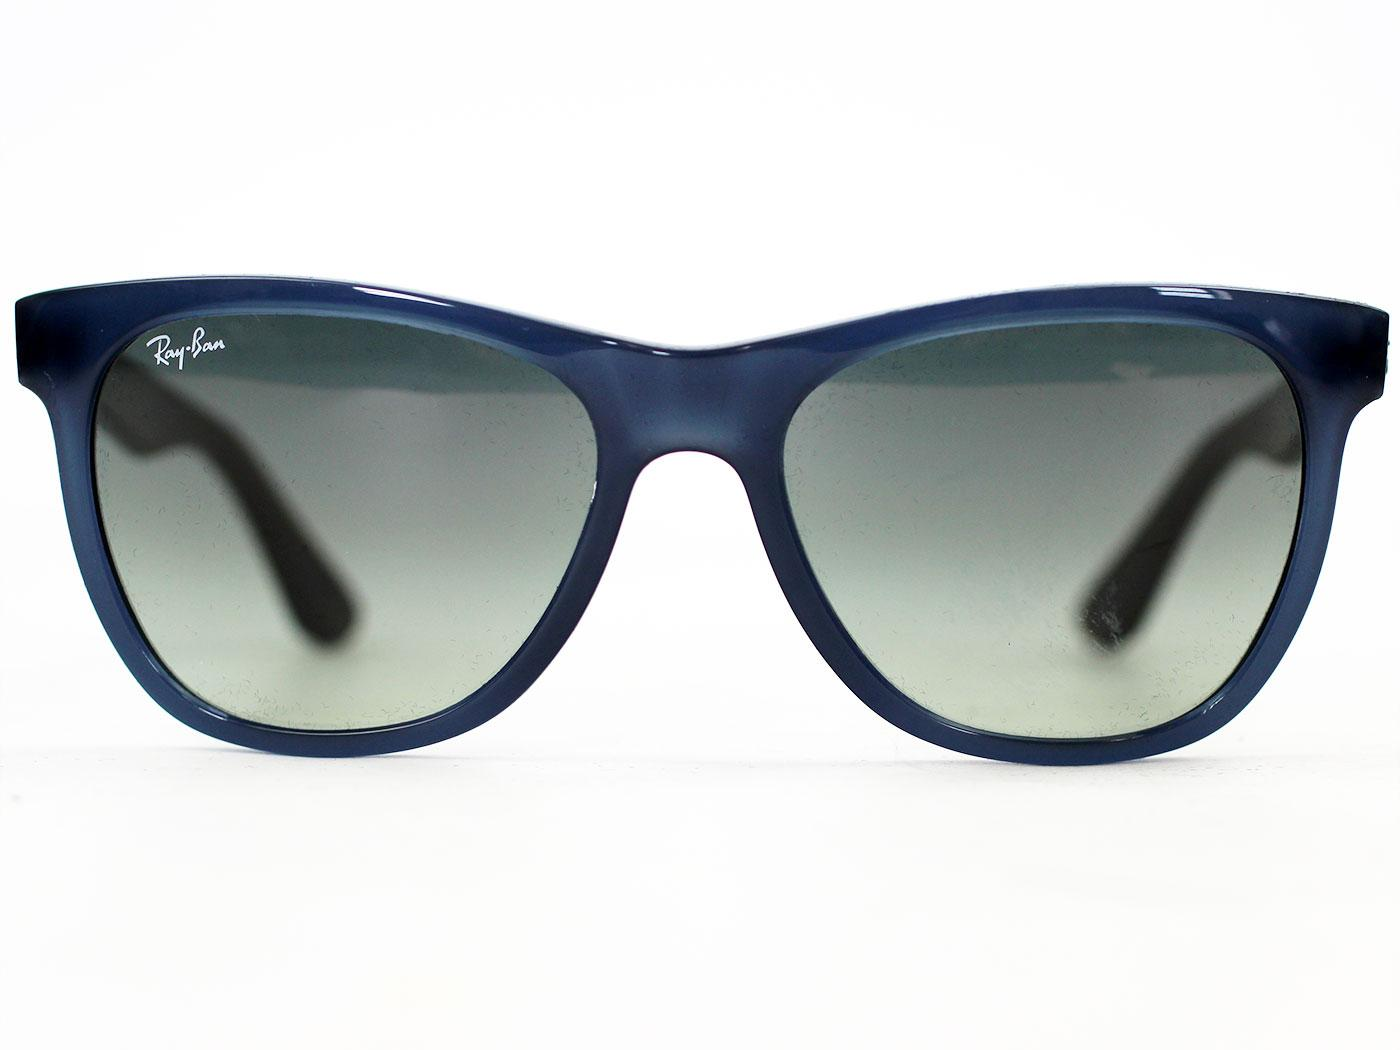 46eac706a6 Ray-Ban Retro Indie Mod Restructured Wayfarers in Grey Blue